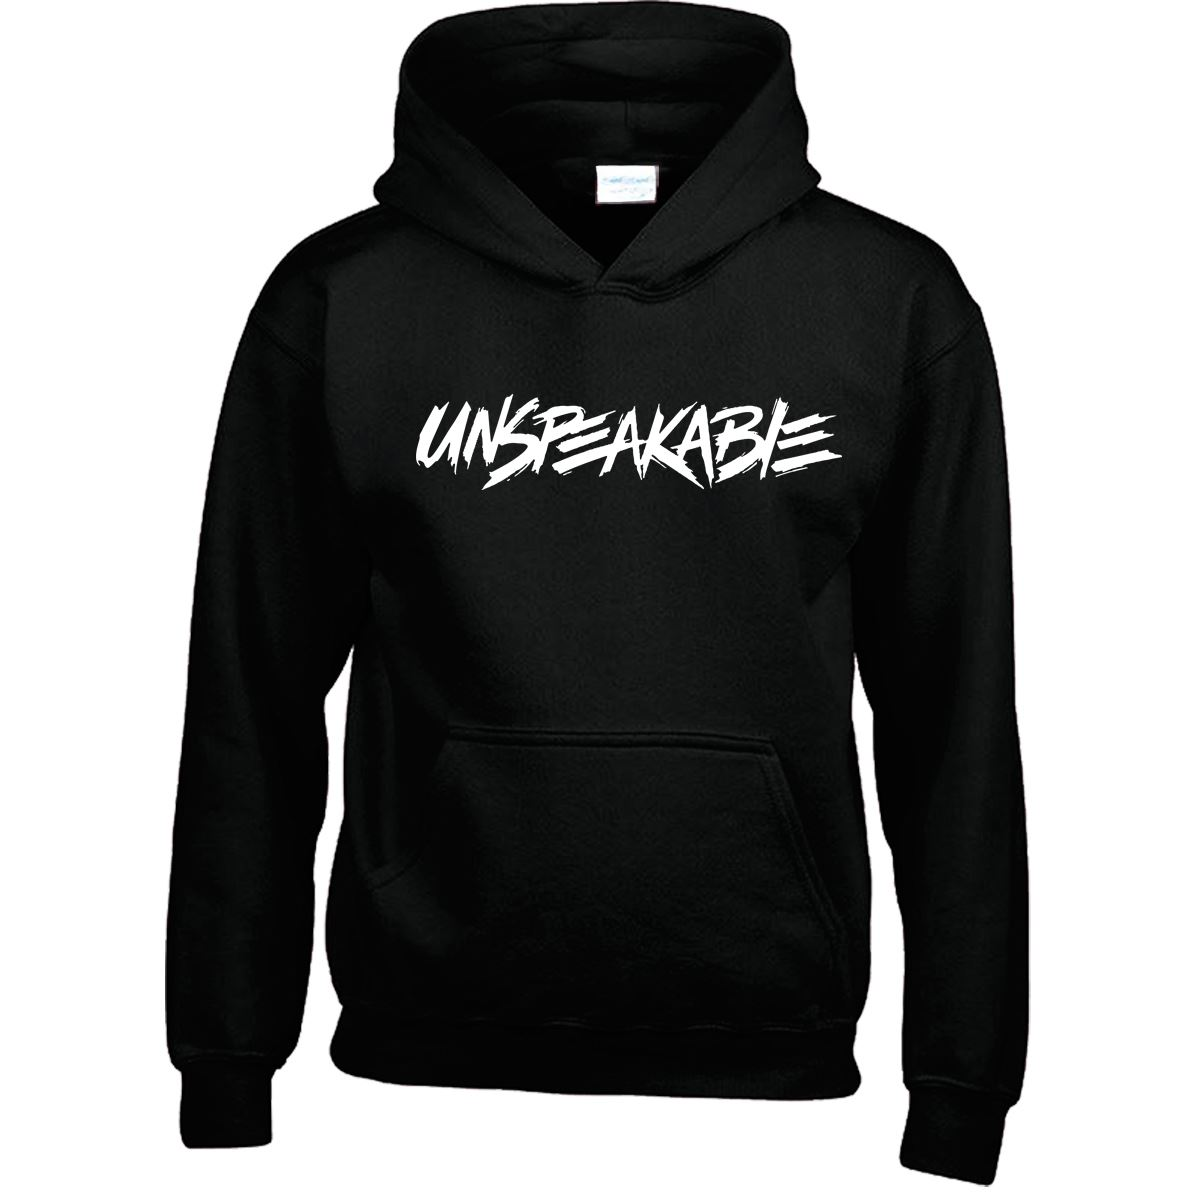 Details about Unspeakable Kids Hoodie Youtube Gamer Boys Girls Vlogger  Christmas Gift Hooded